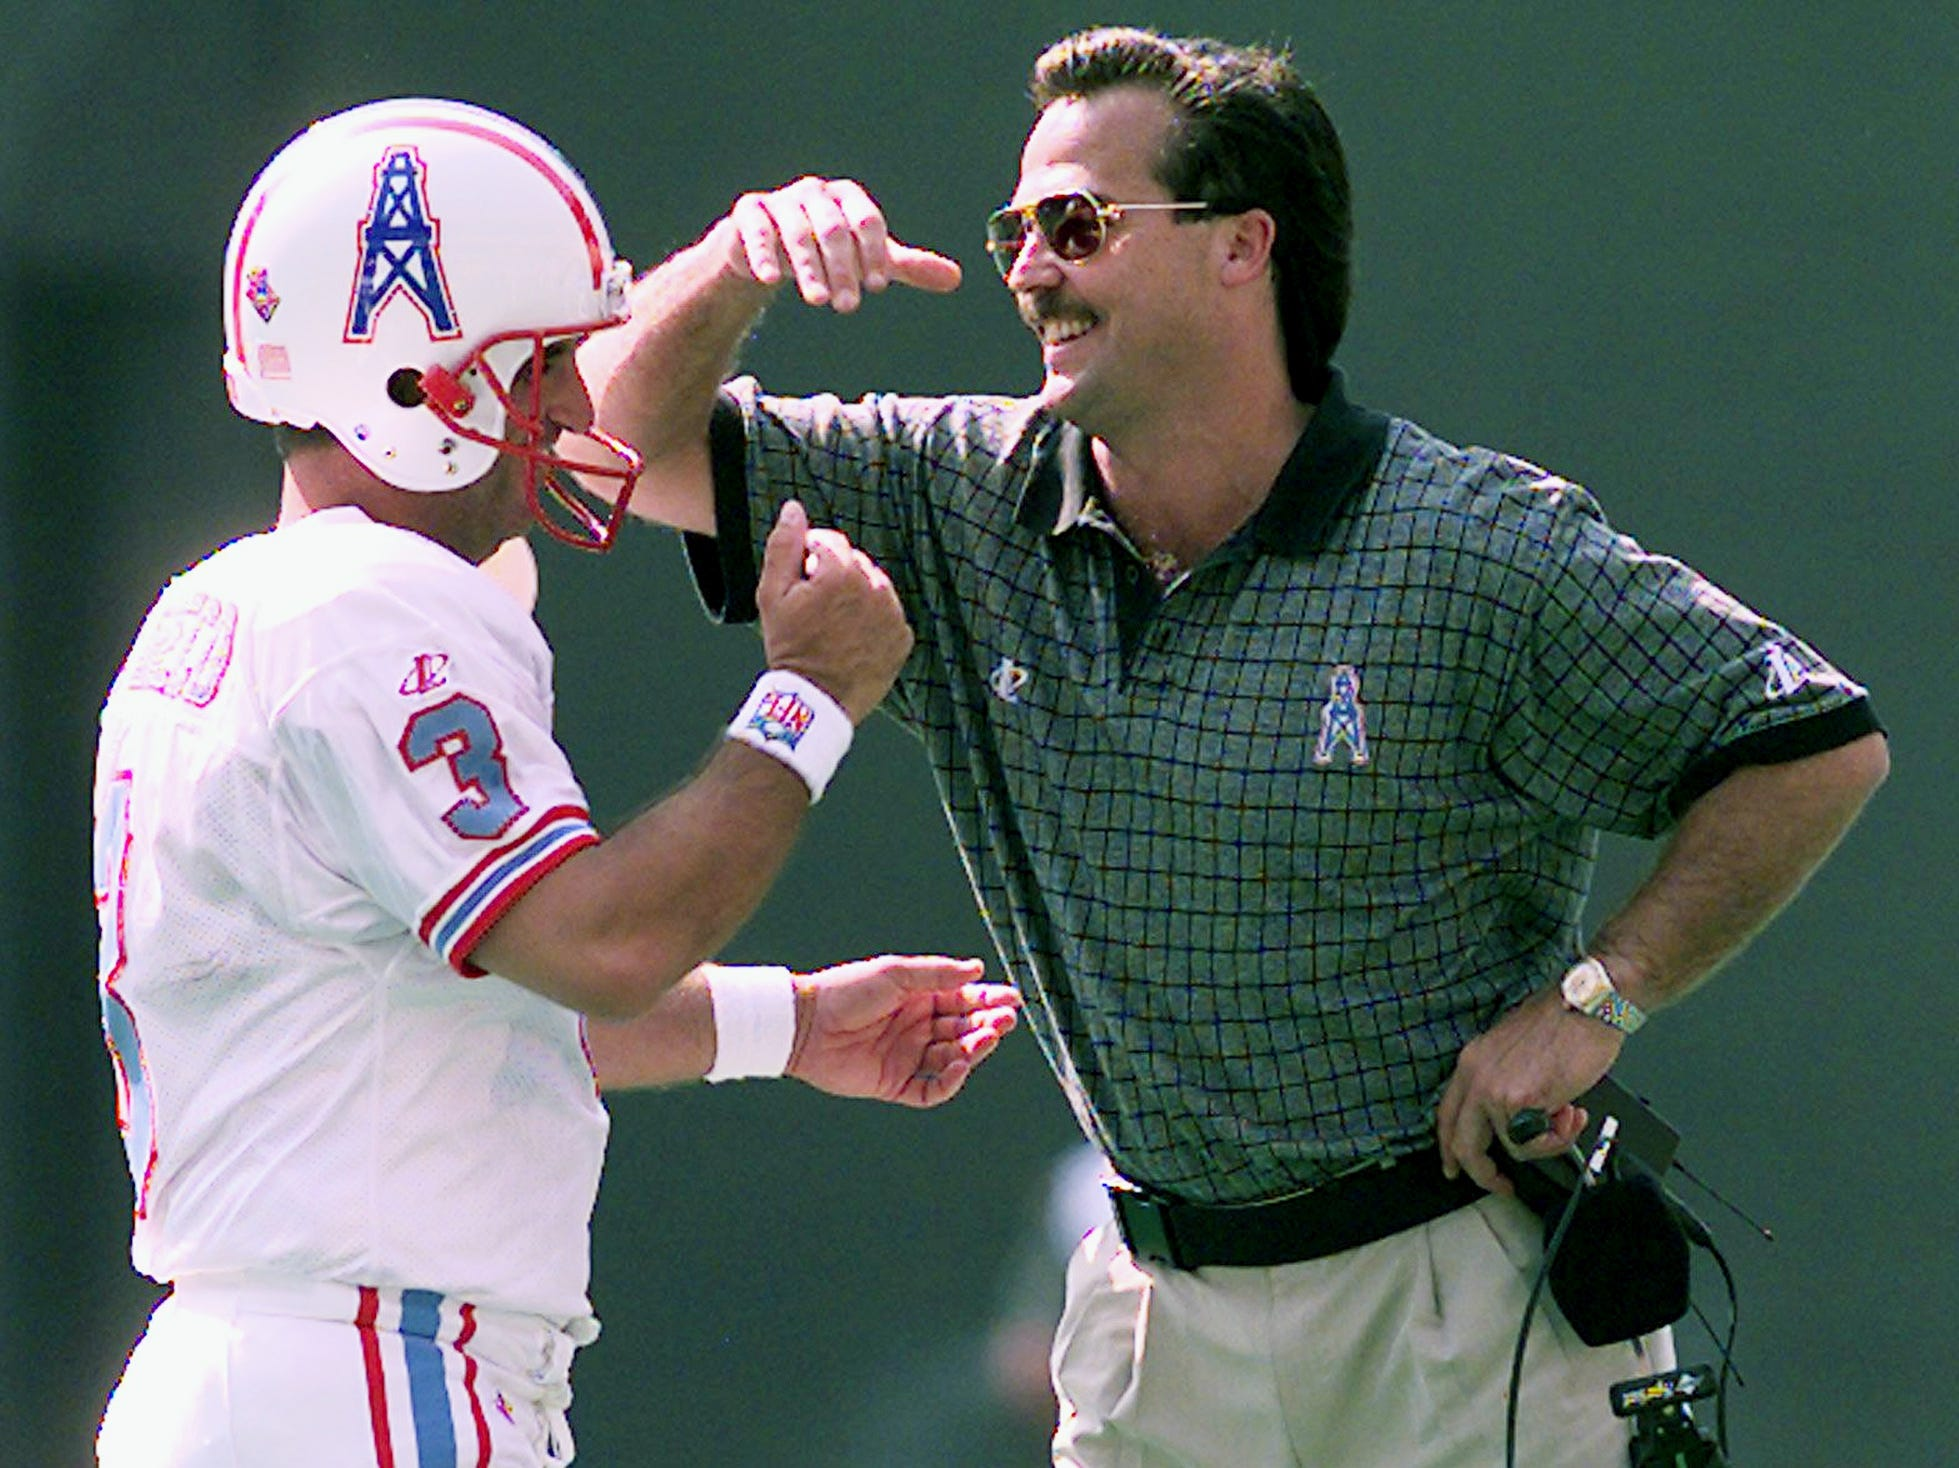 Tennessee Oilers head coach Jeff Fisher, right, congratulates kicker Al Del Greco after making a field goal against Cincinnati Bengals. The Oilers went on to a 23-14 road victory Sept. 6, 1998.